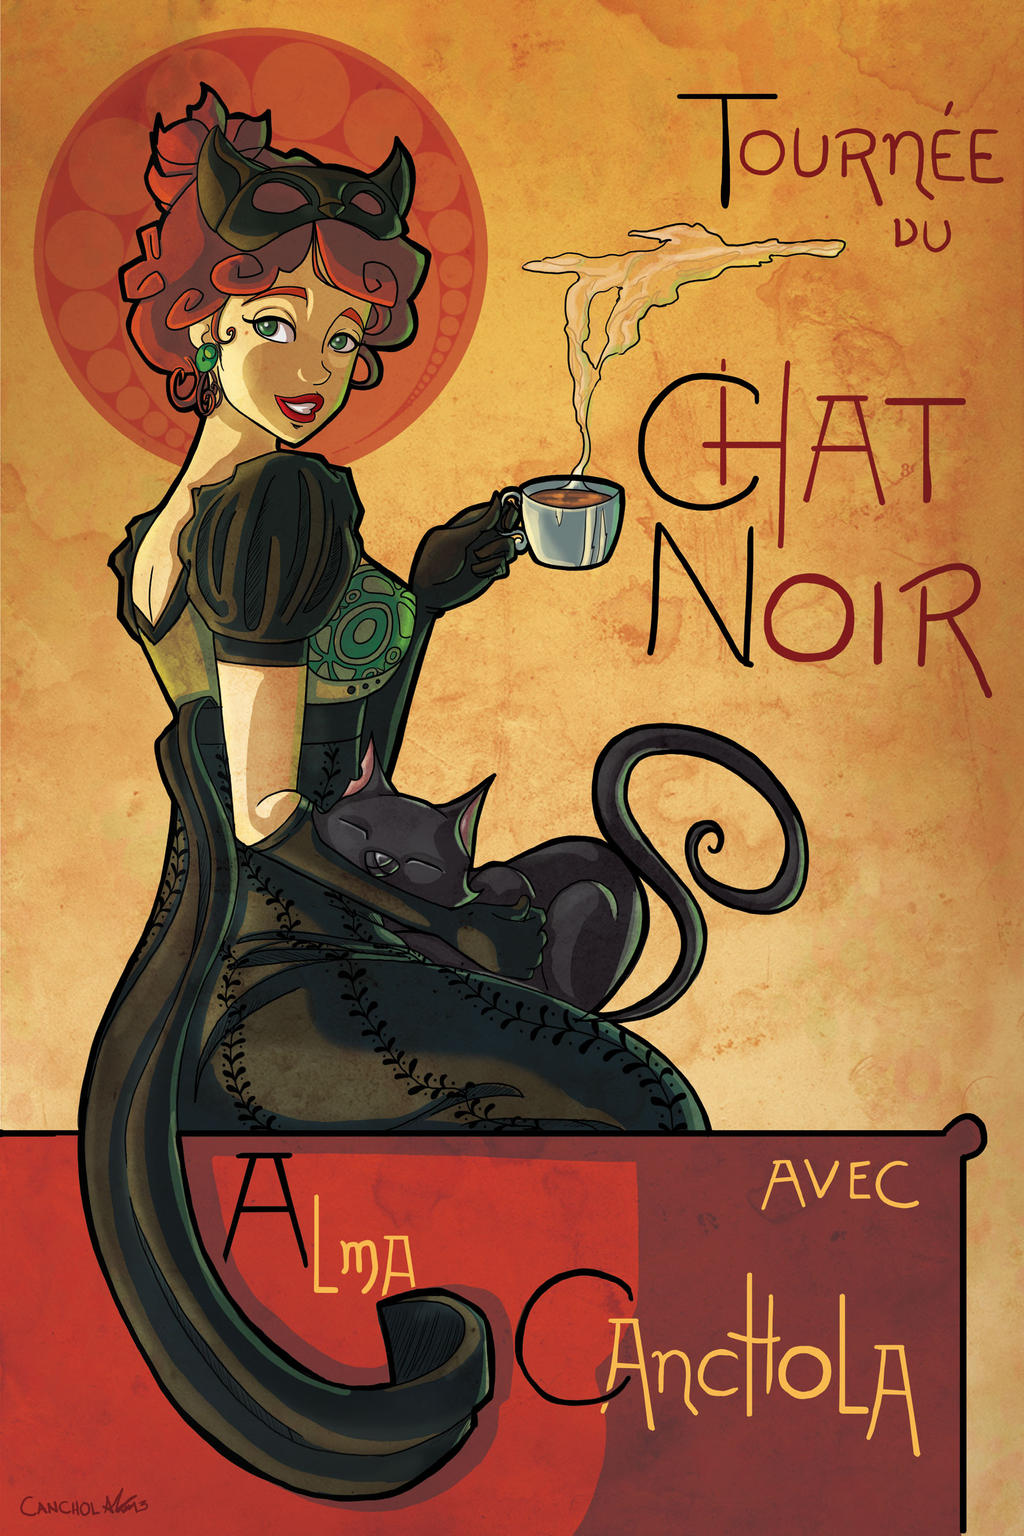 Tribute to Chat Noir Poster by Canchola on DeviantArt